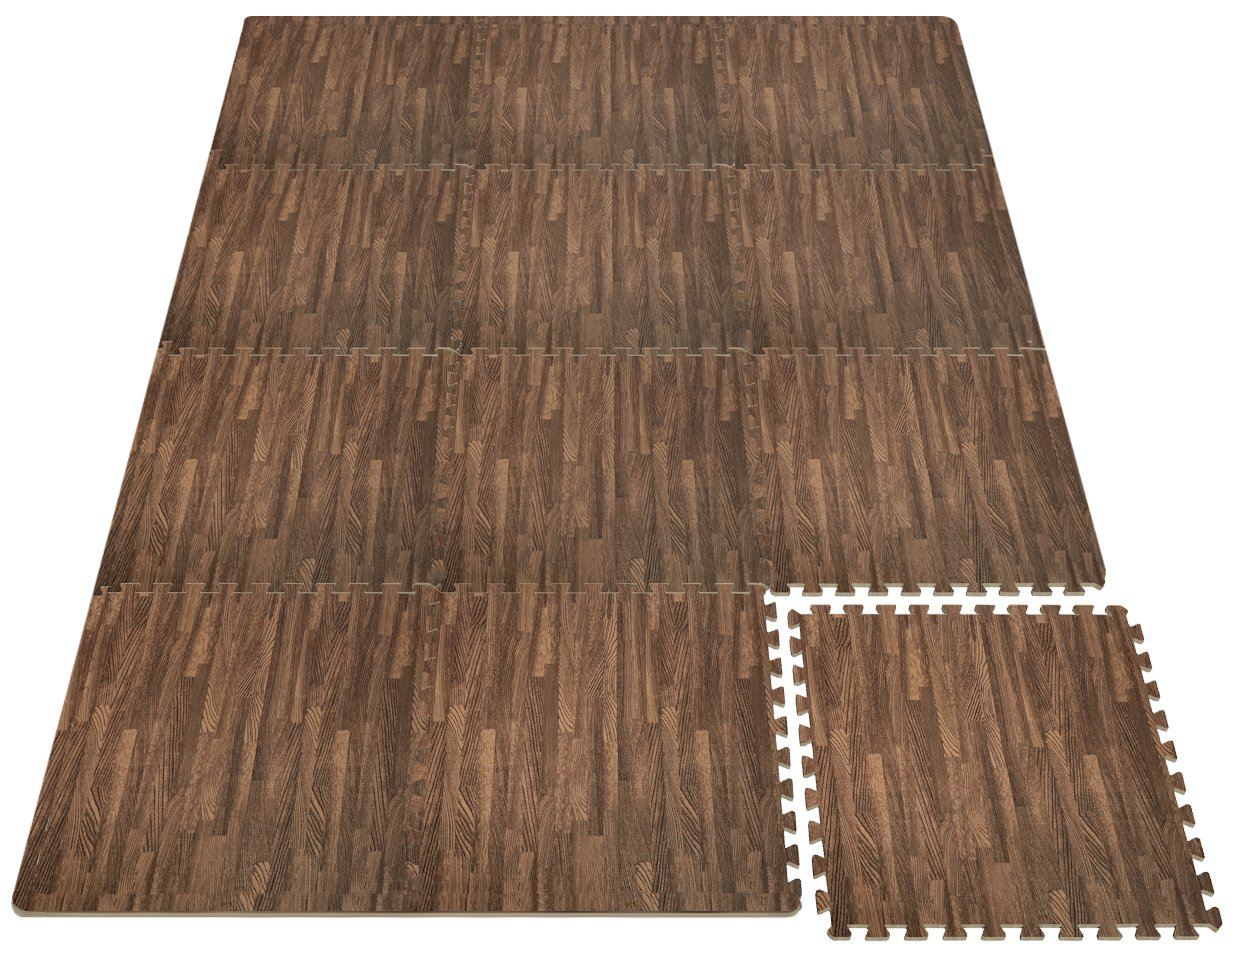 Sorbus Wood Floor Mats Foam Interlocking Wood Mats Each Tile 4 Square Feet 3/8-Inch Thick Puzzle Wood Tiles with Borders – for Home Office Playroom Basement (12 Tiles 48 Sq ft, Wood Grain - Dark) by Sorbus (Image #6)